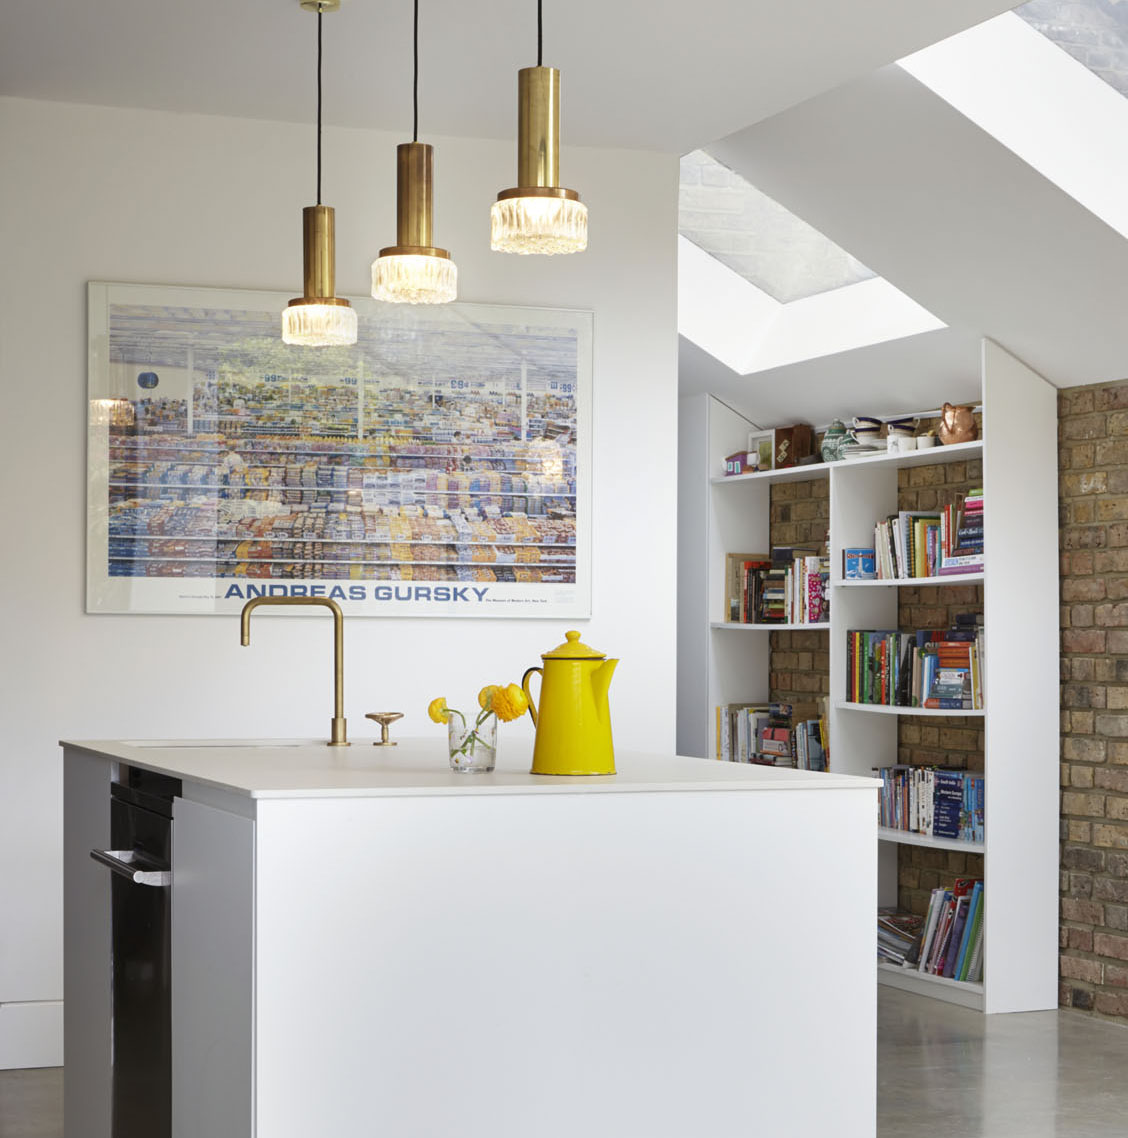 The 'Brooklyn' looking stunning in a modern interior